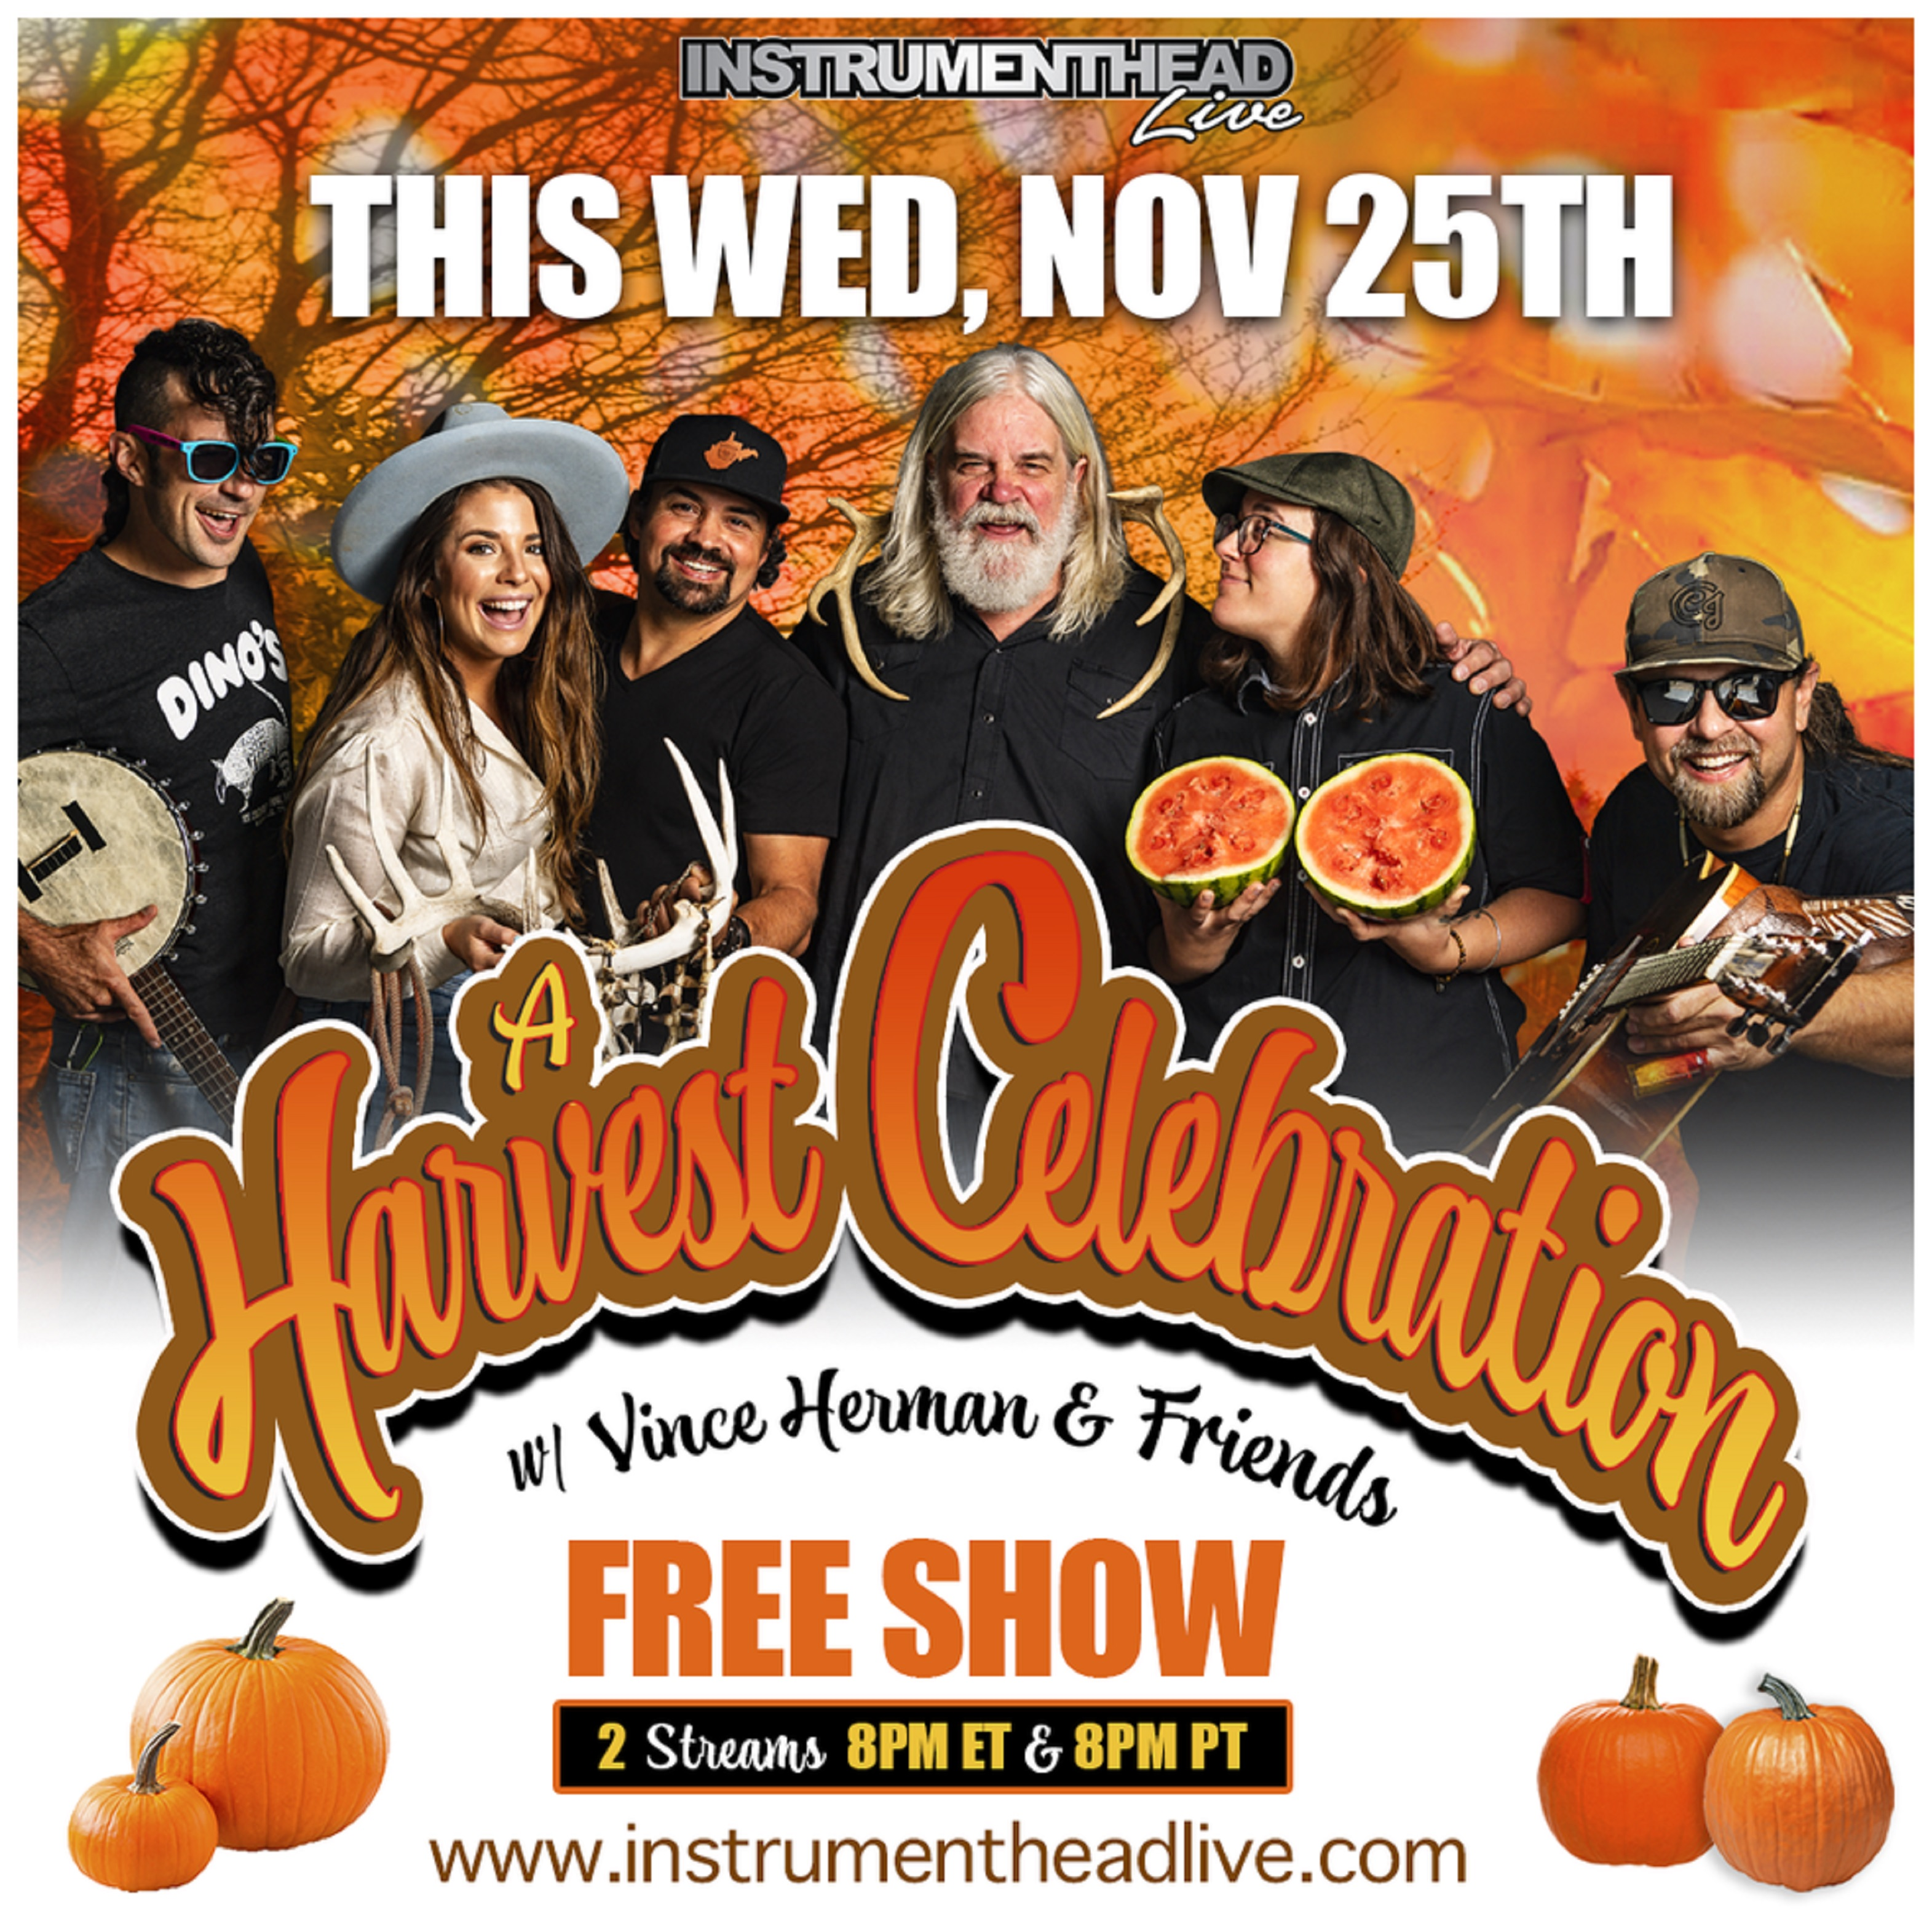 Vince Herman & Friends: A Harvest Celebration on Instrumenthead Live - Wed 11/25